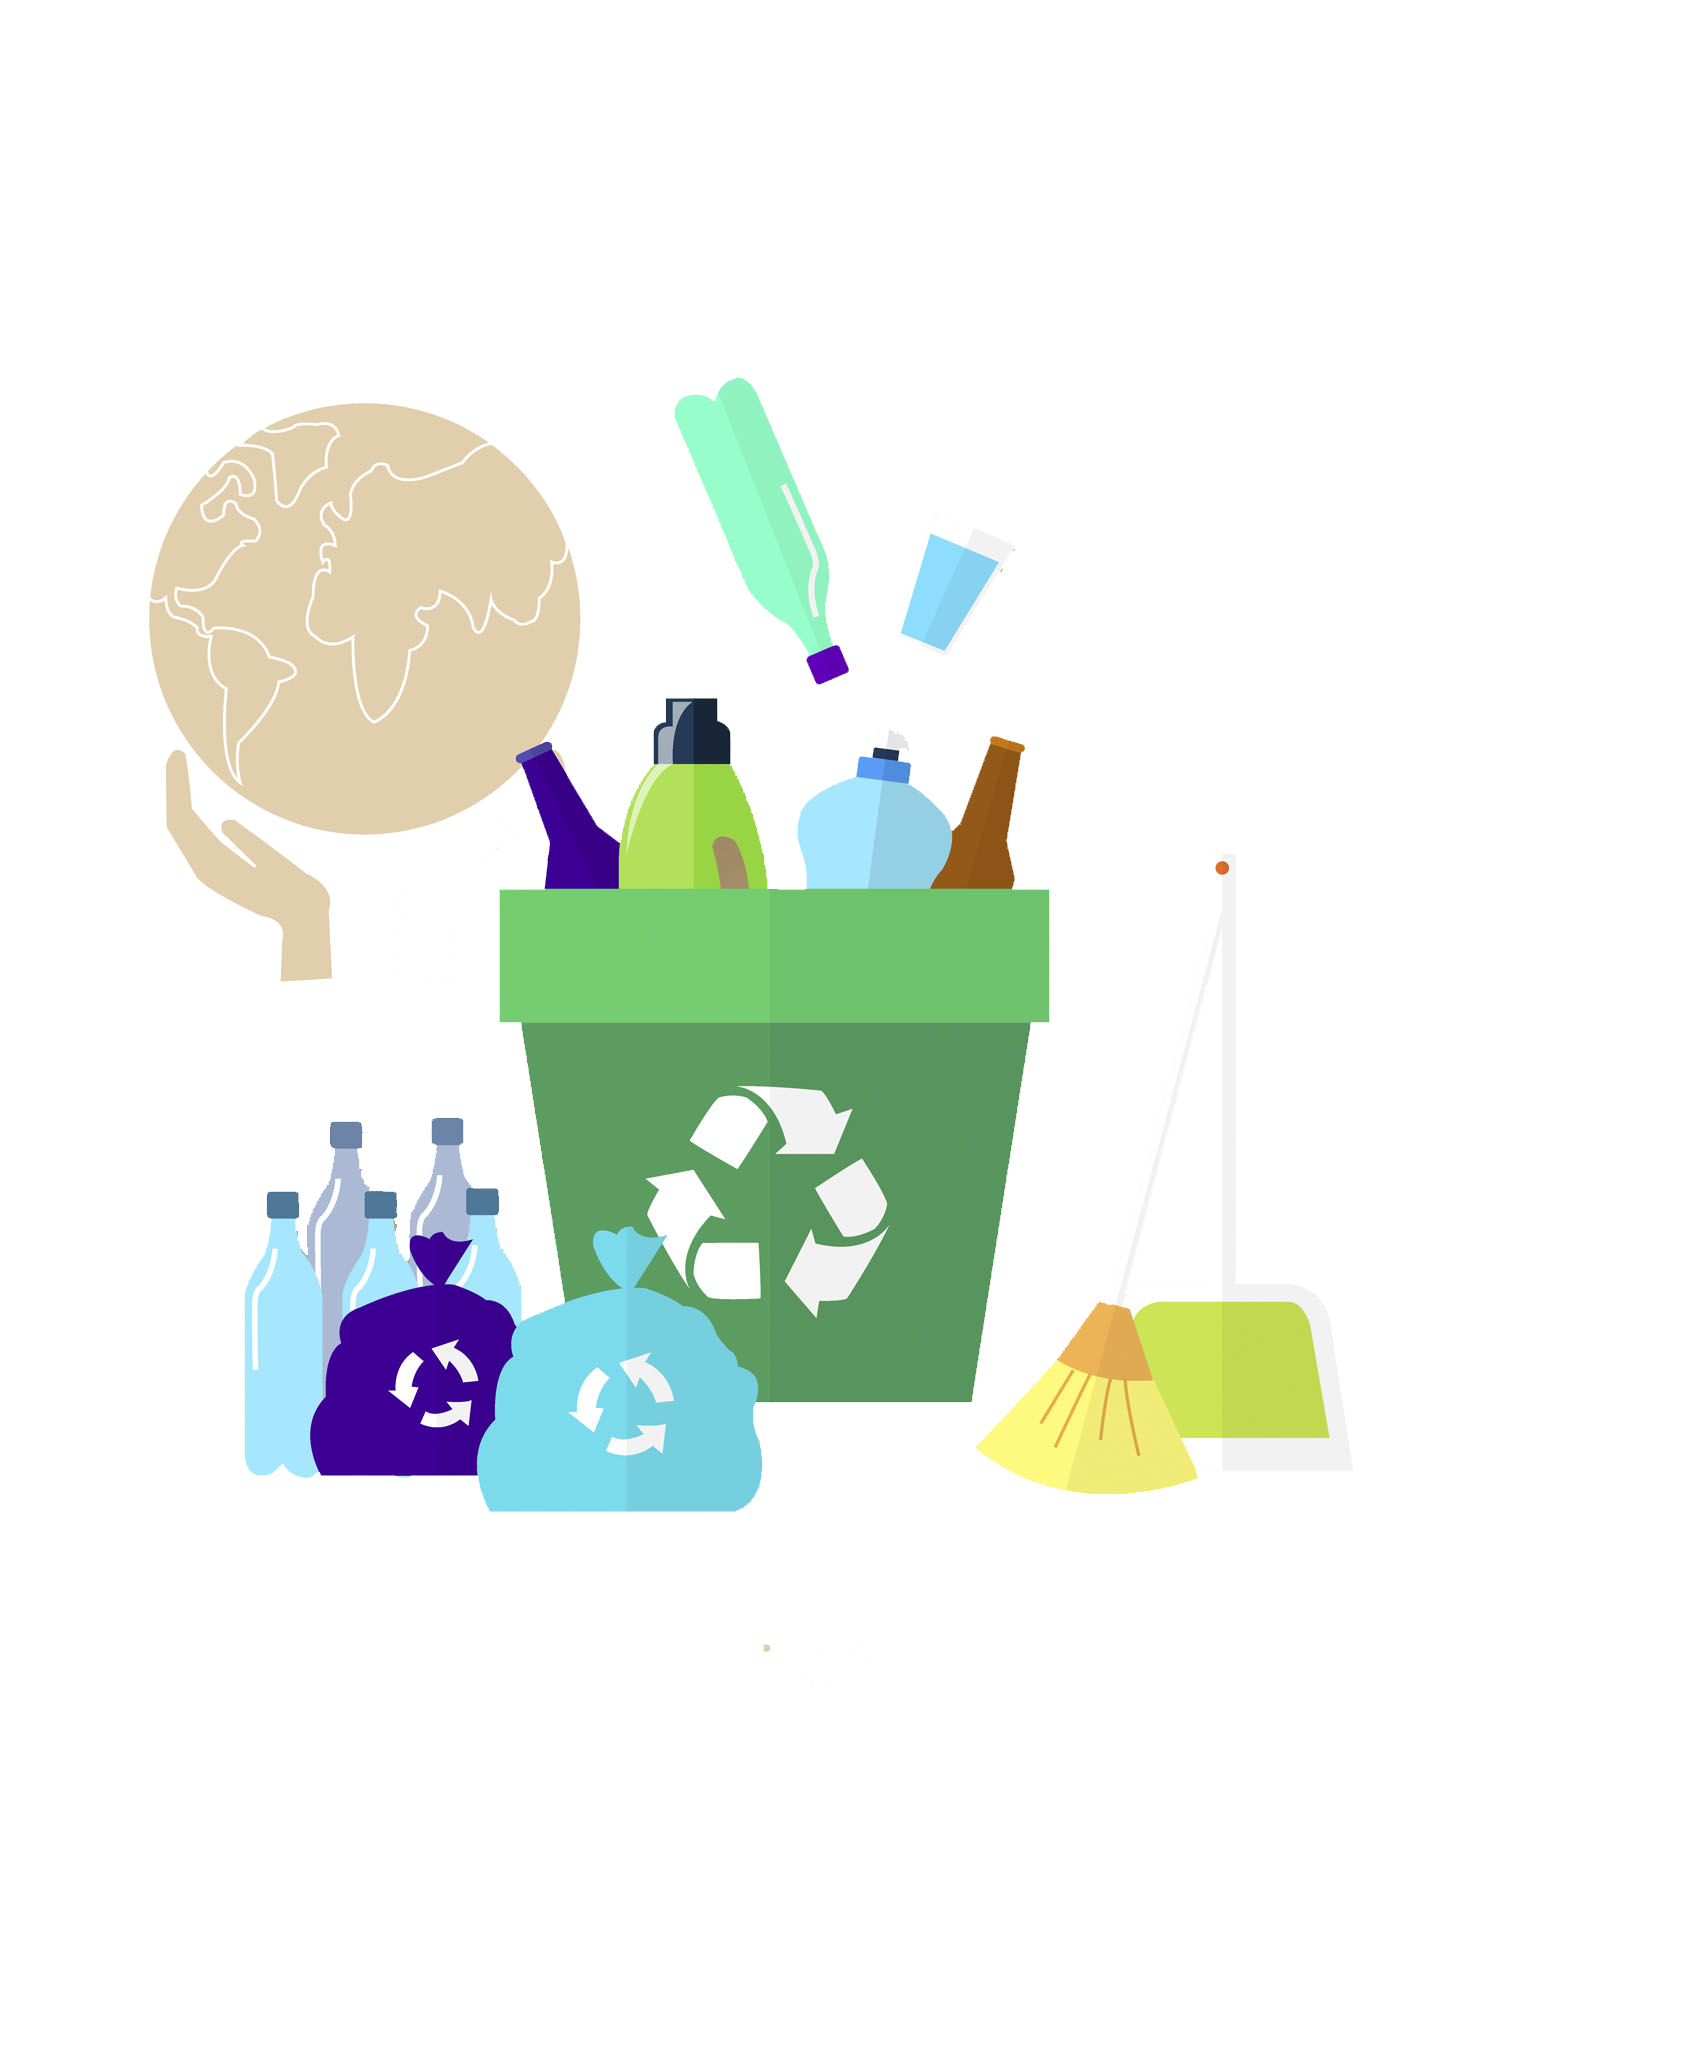 Upcycling clipart png download Environment clipart upcycling, Environment upcycling ... png download